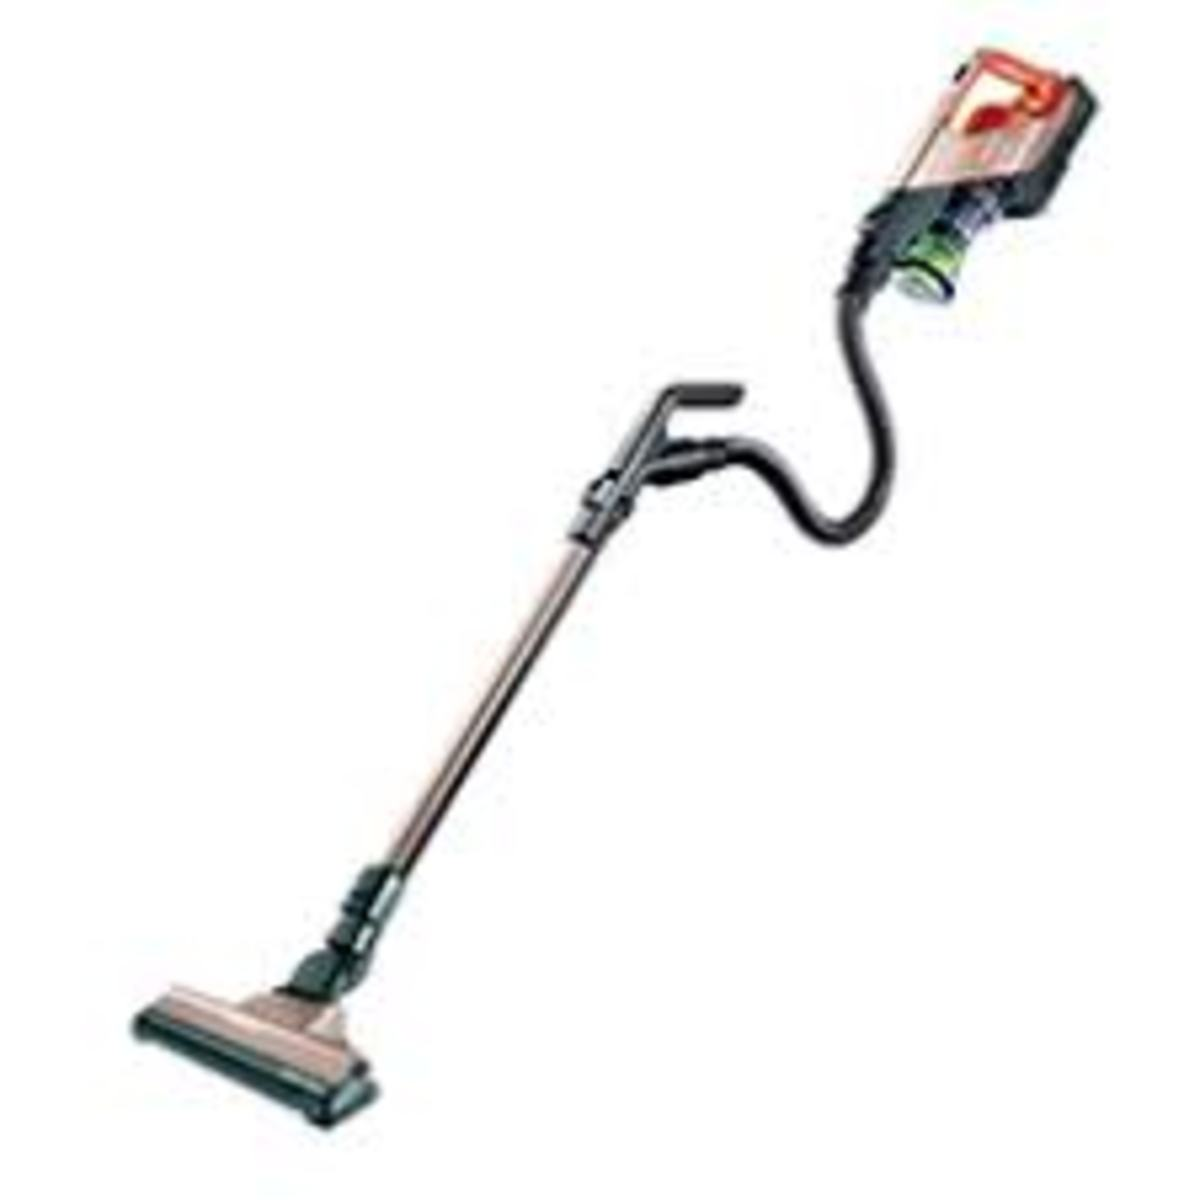 PVXEH900 (Champagne Gold) Stick Vacuum Cleaner